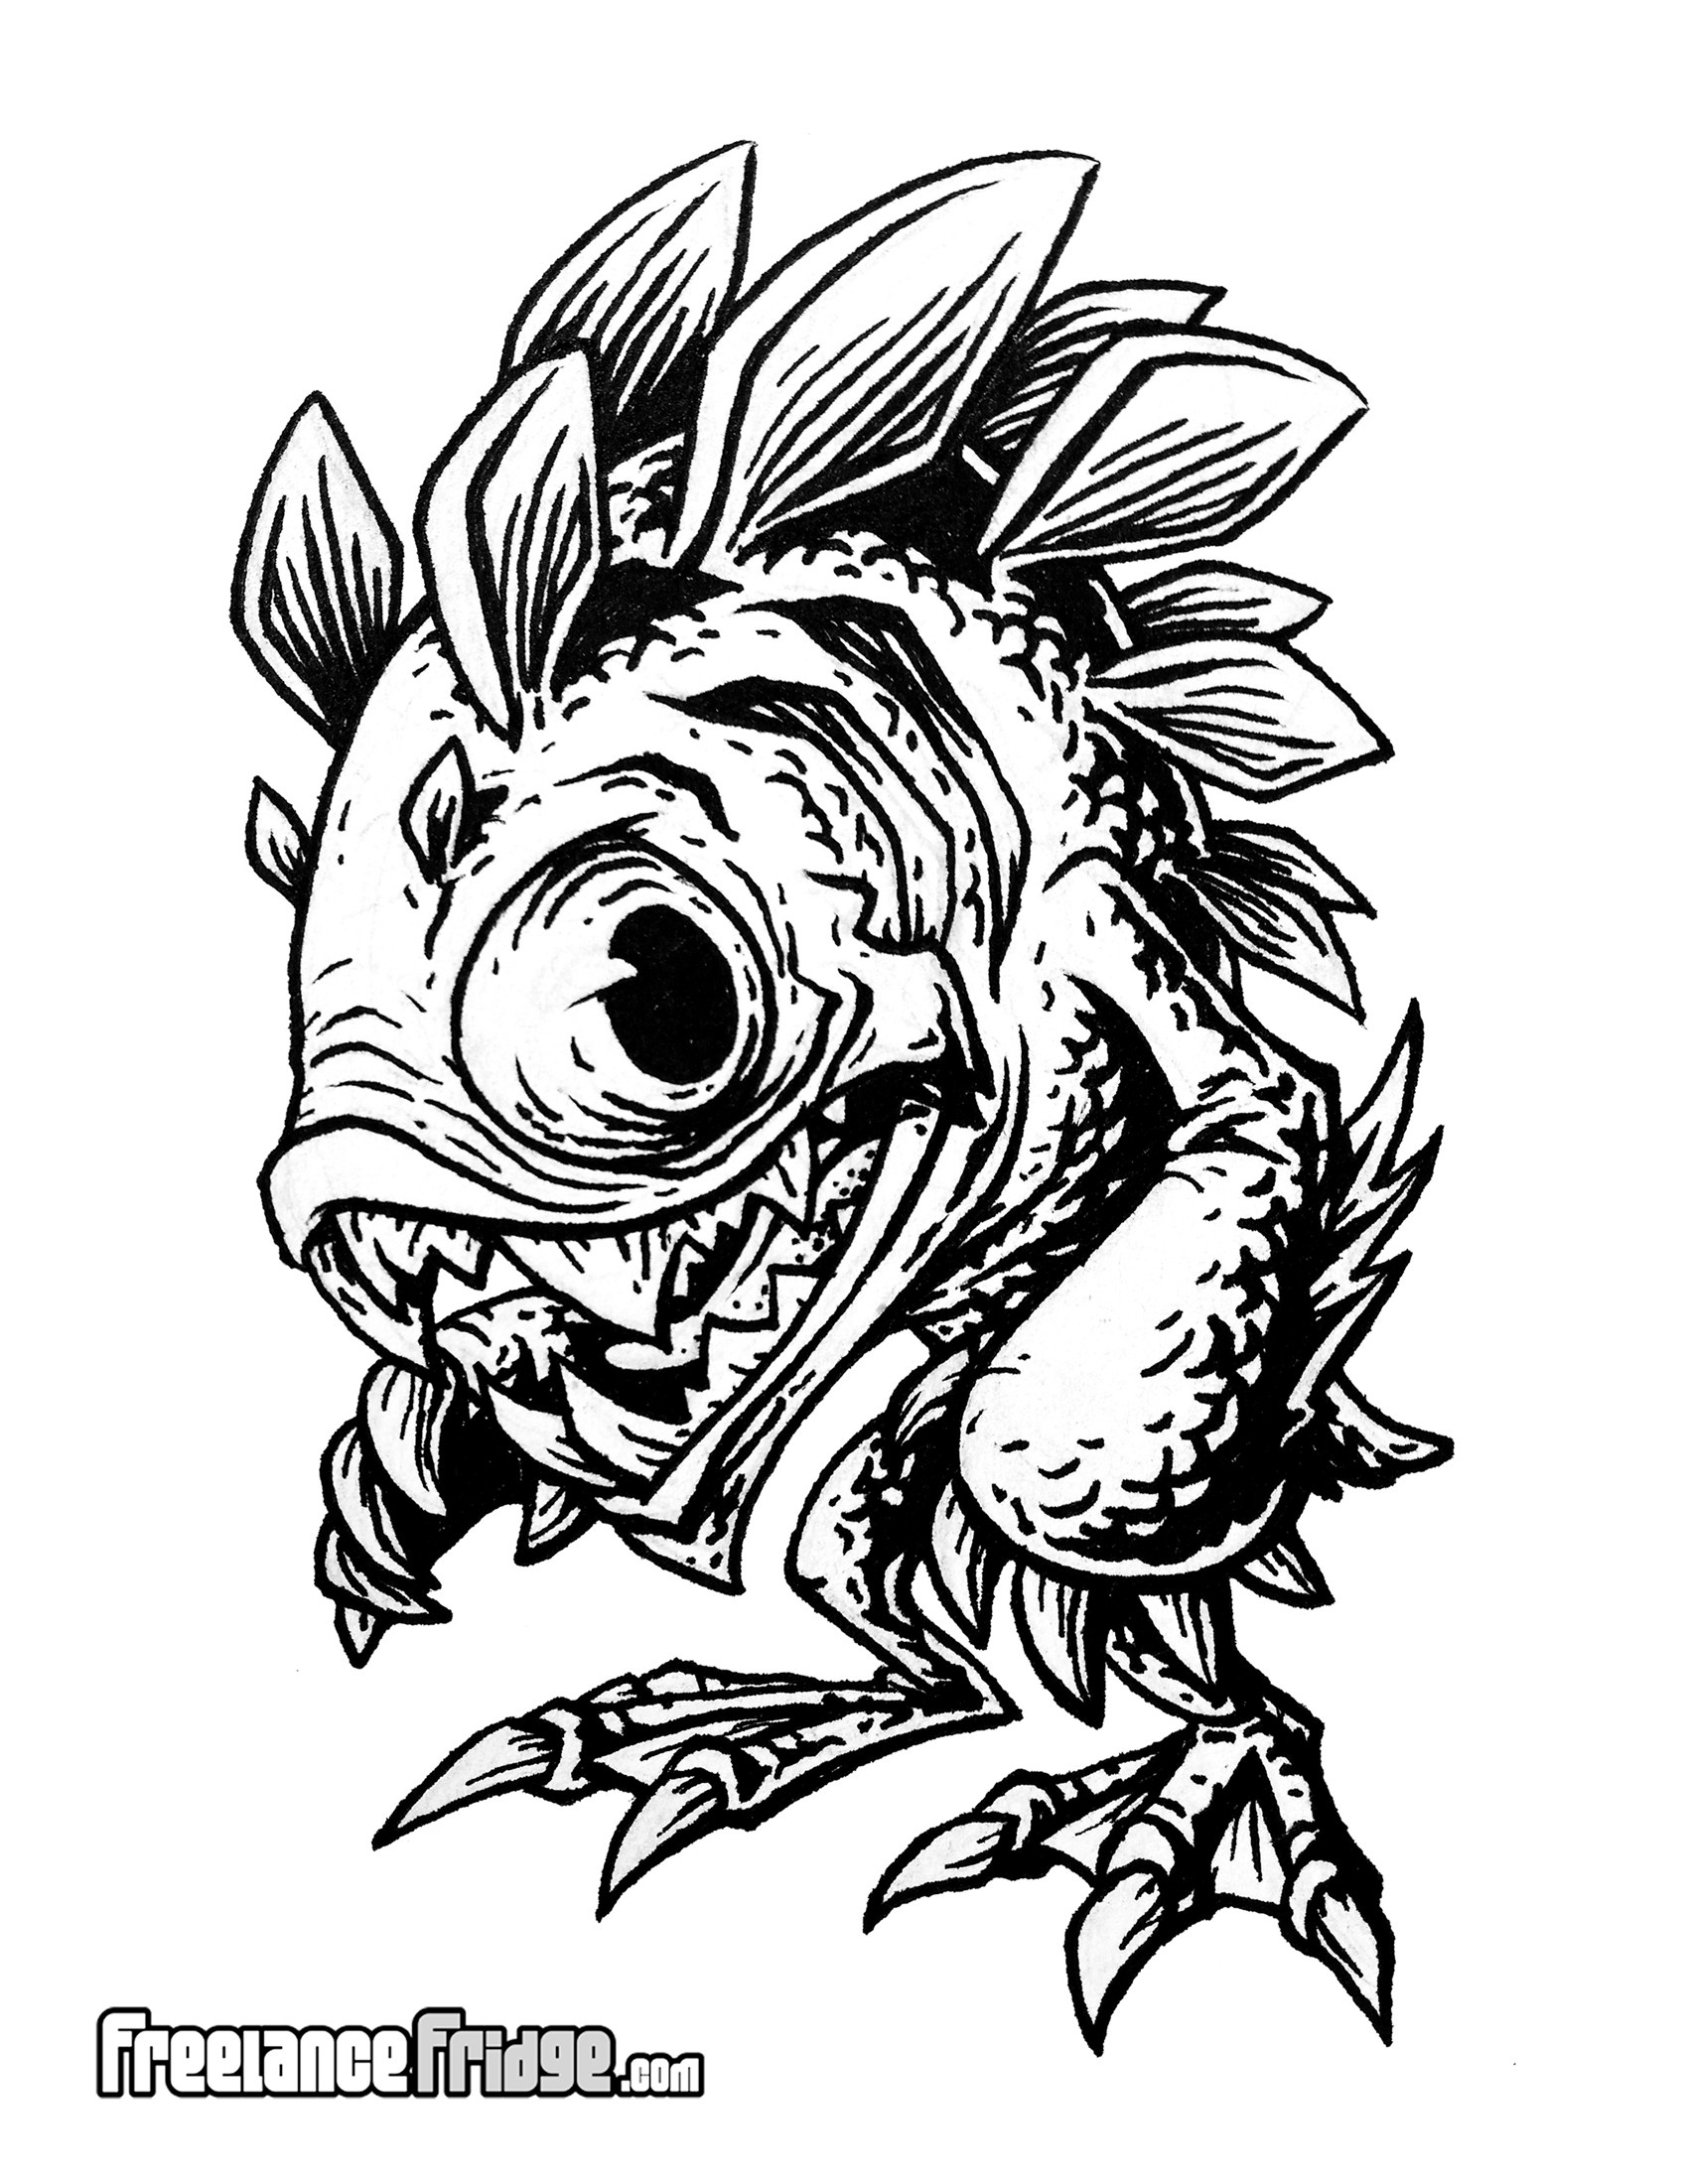 Murloc Fish Humanoid Monster Creature Concept Cartoon Black And White Adult Coloring Page Drawing Illustration